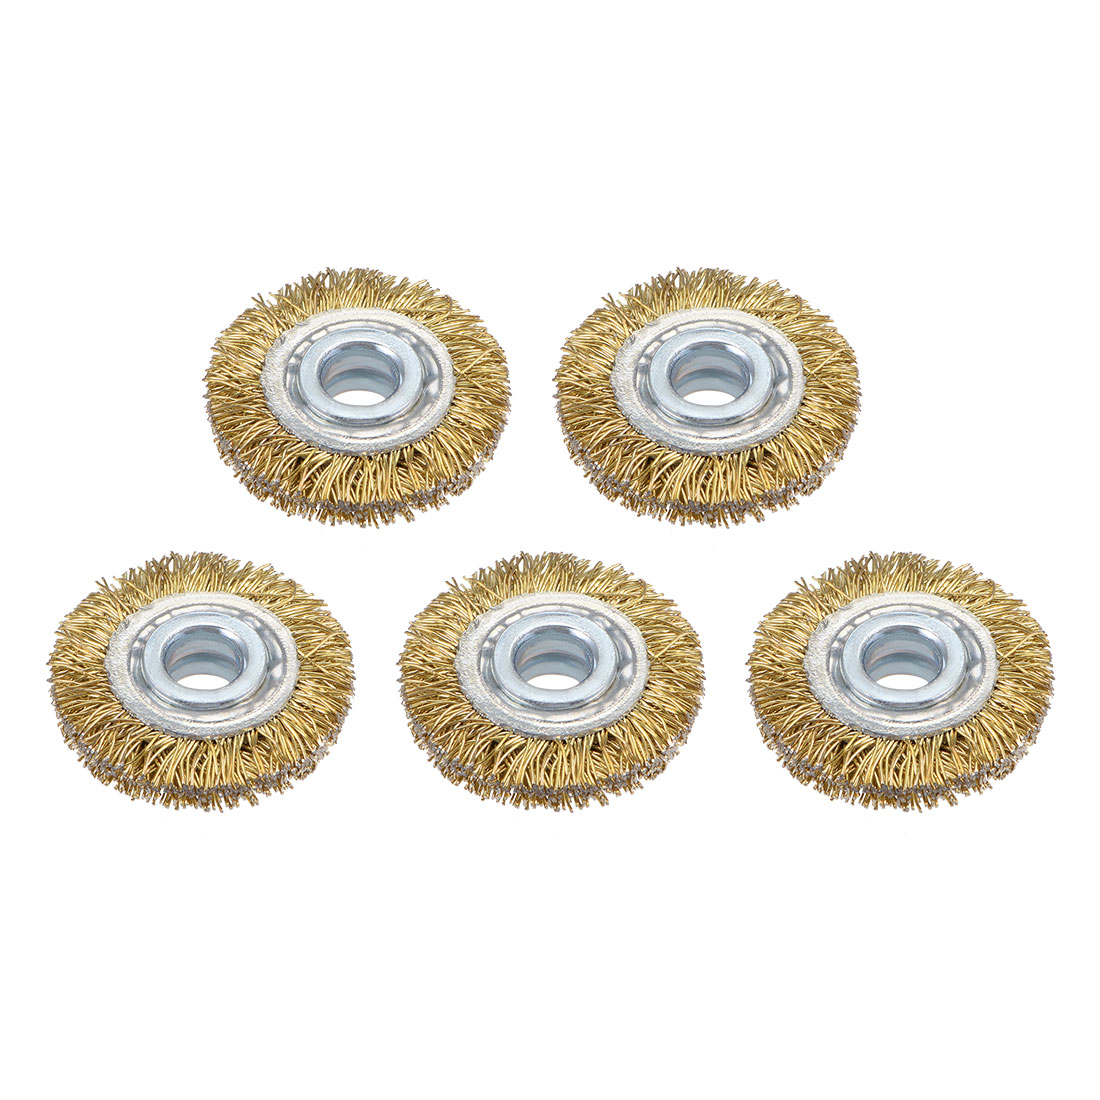 1-Inch Wire Wheel Brush Bench Brass Plated Crimped Steel w 1/4-Inch Arbor 5 Pcs